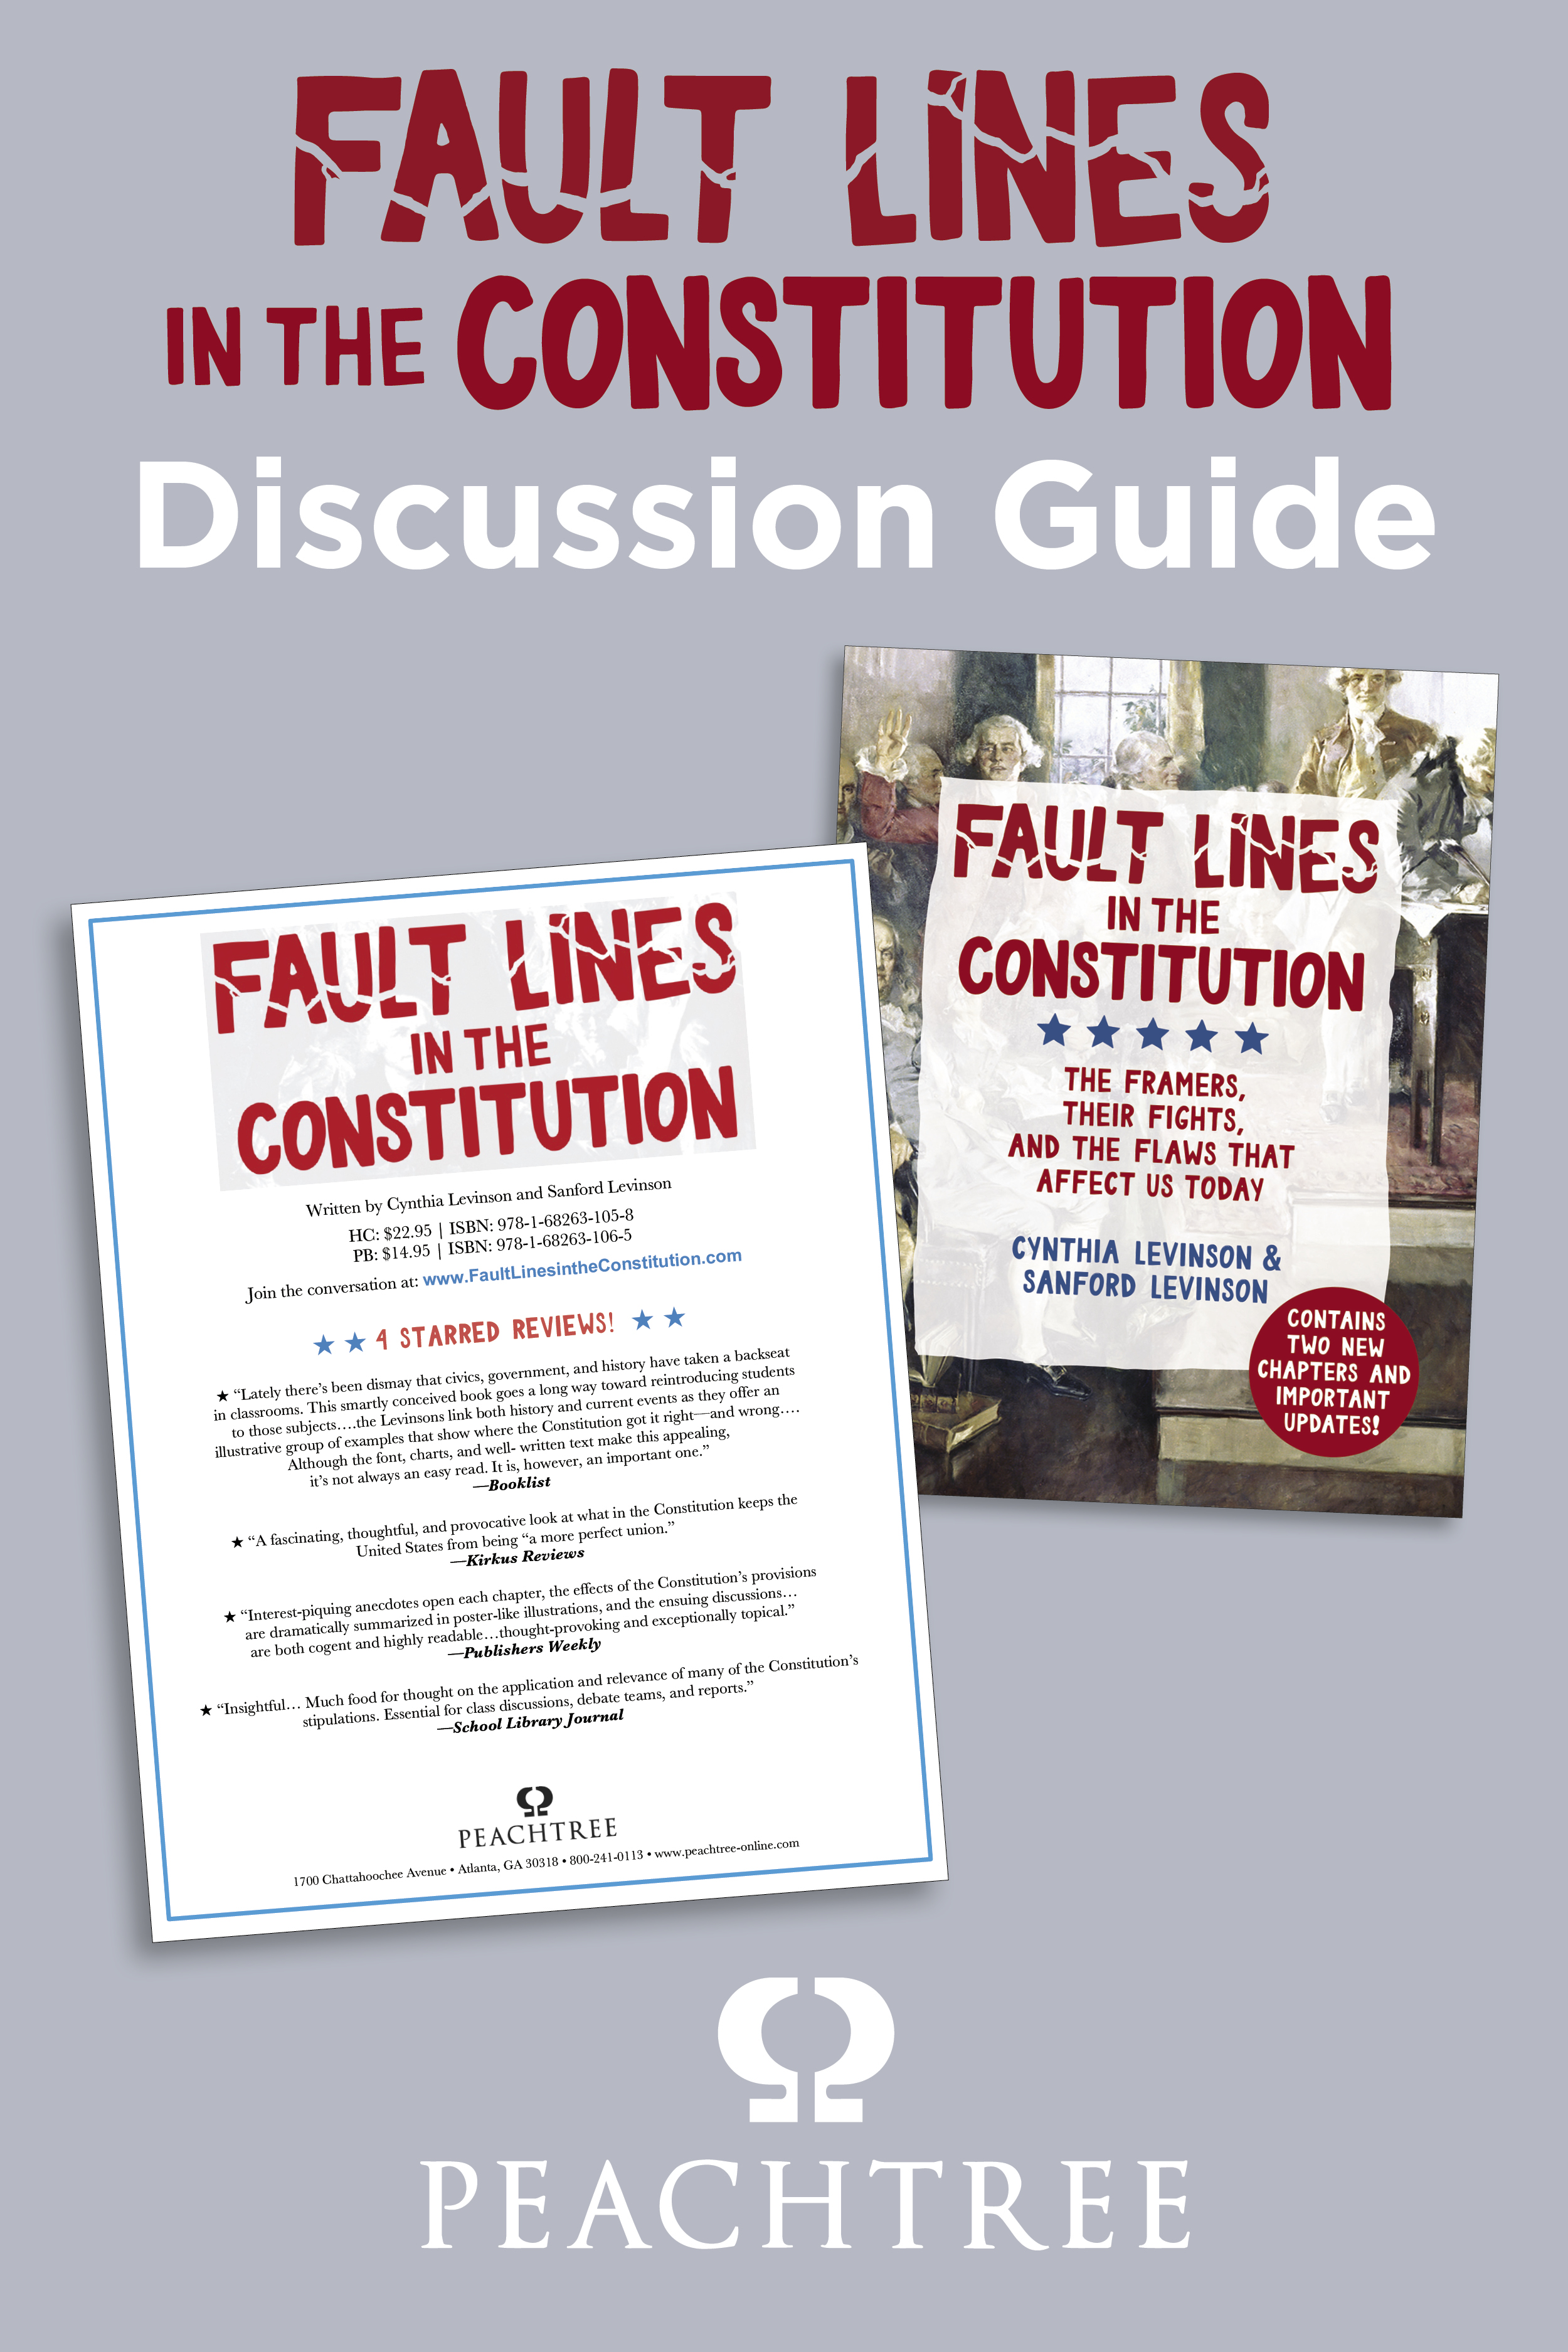 Fault Lines in the Constitution Discussion Guide